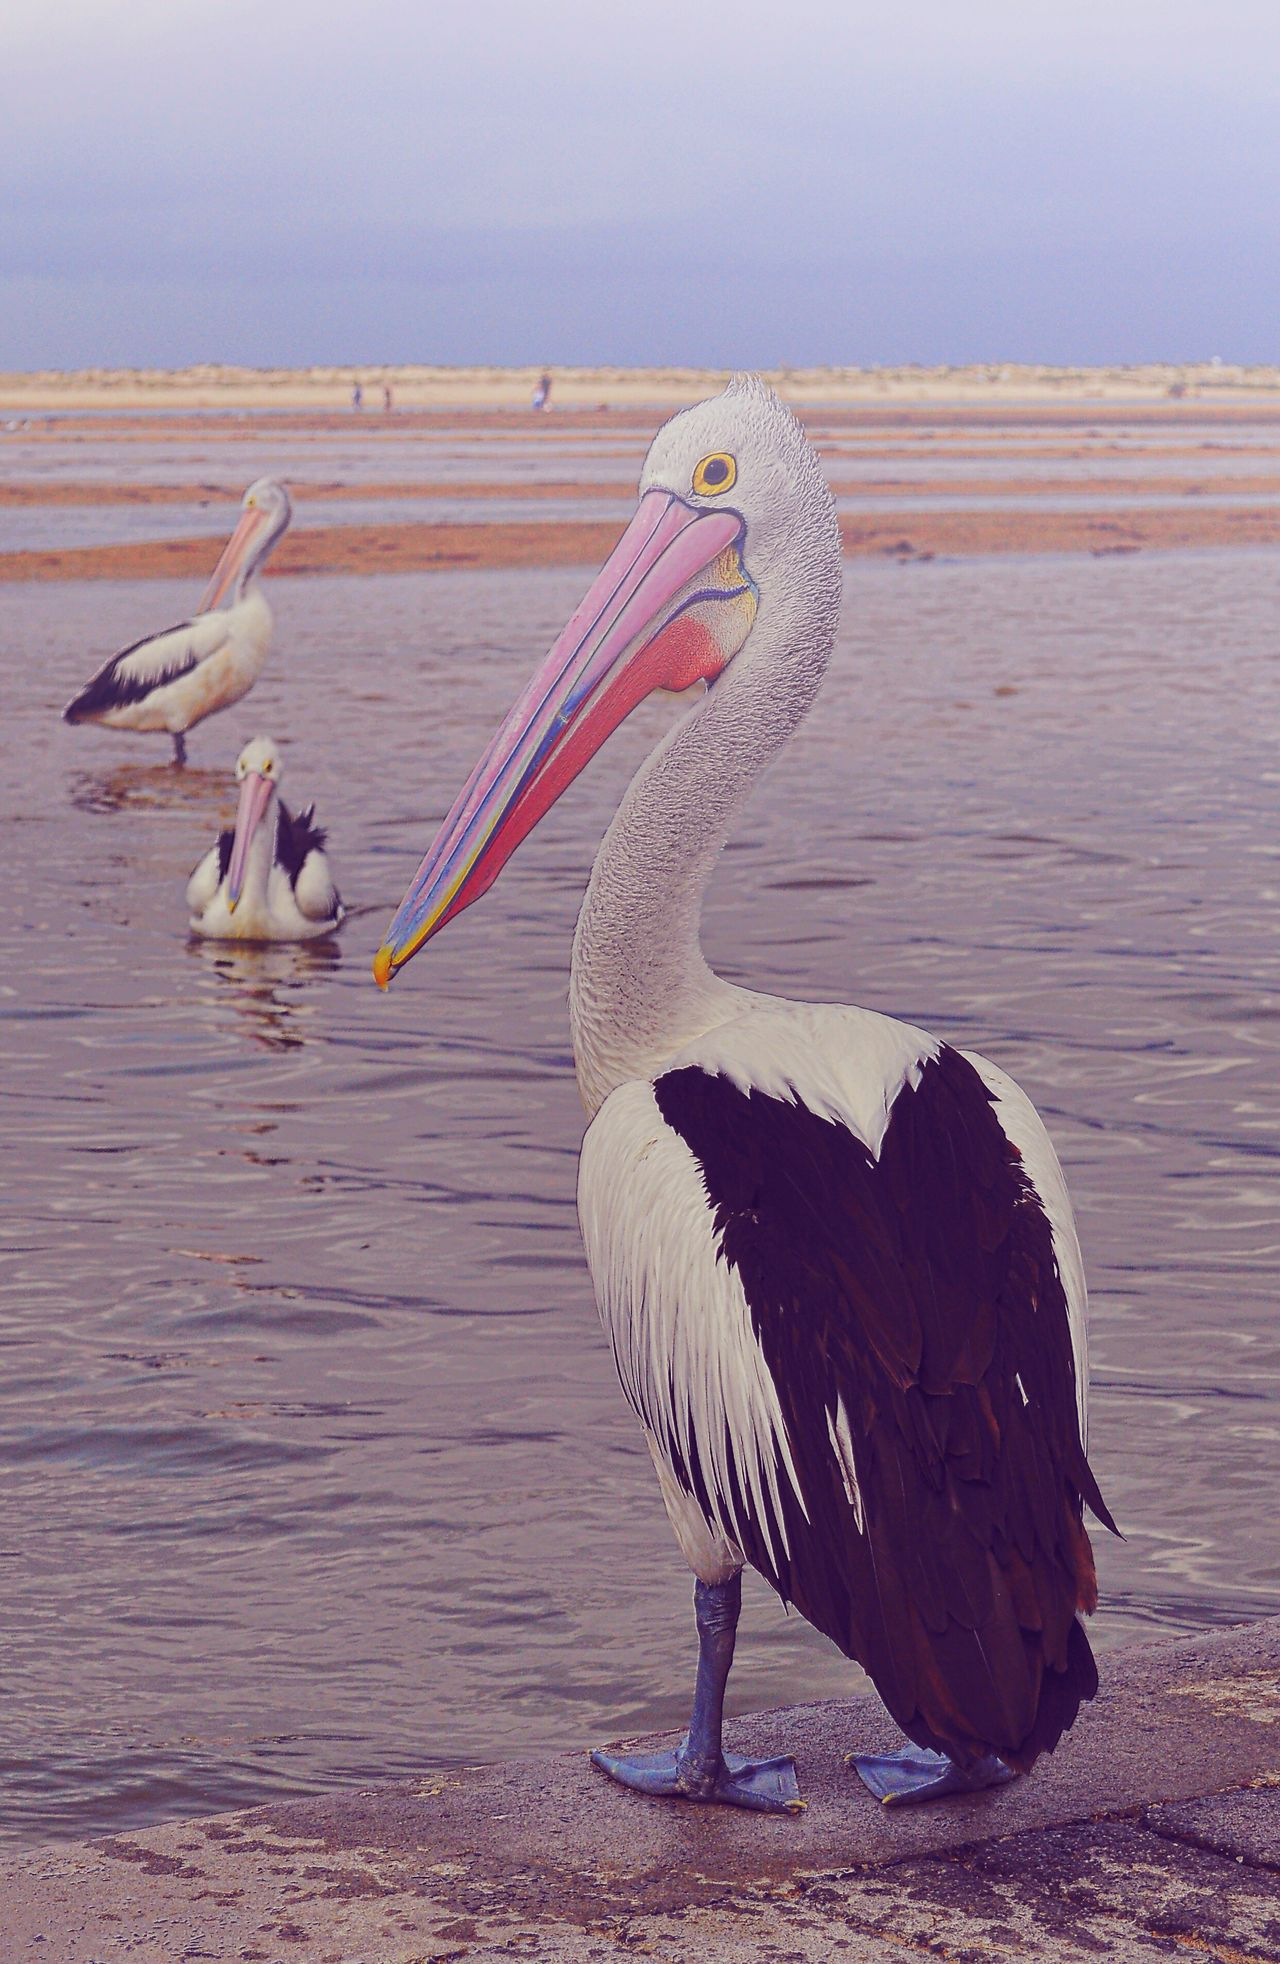 Australia Portstephens Pelican Bird Animals In The Wild Animal Themes Animal Wildlife One Animal Lake Water No People Outdoors Beauty In Nature Model